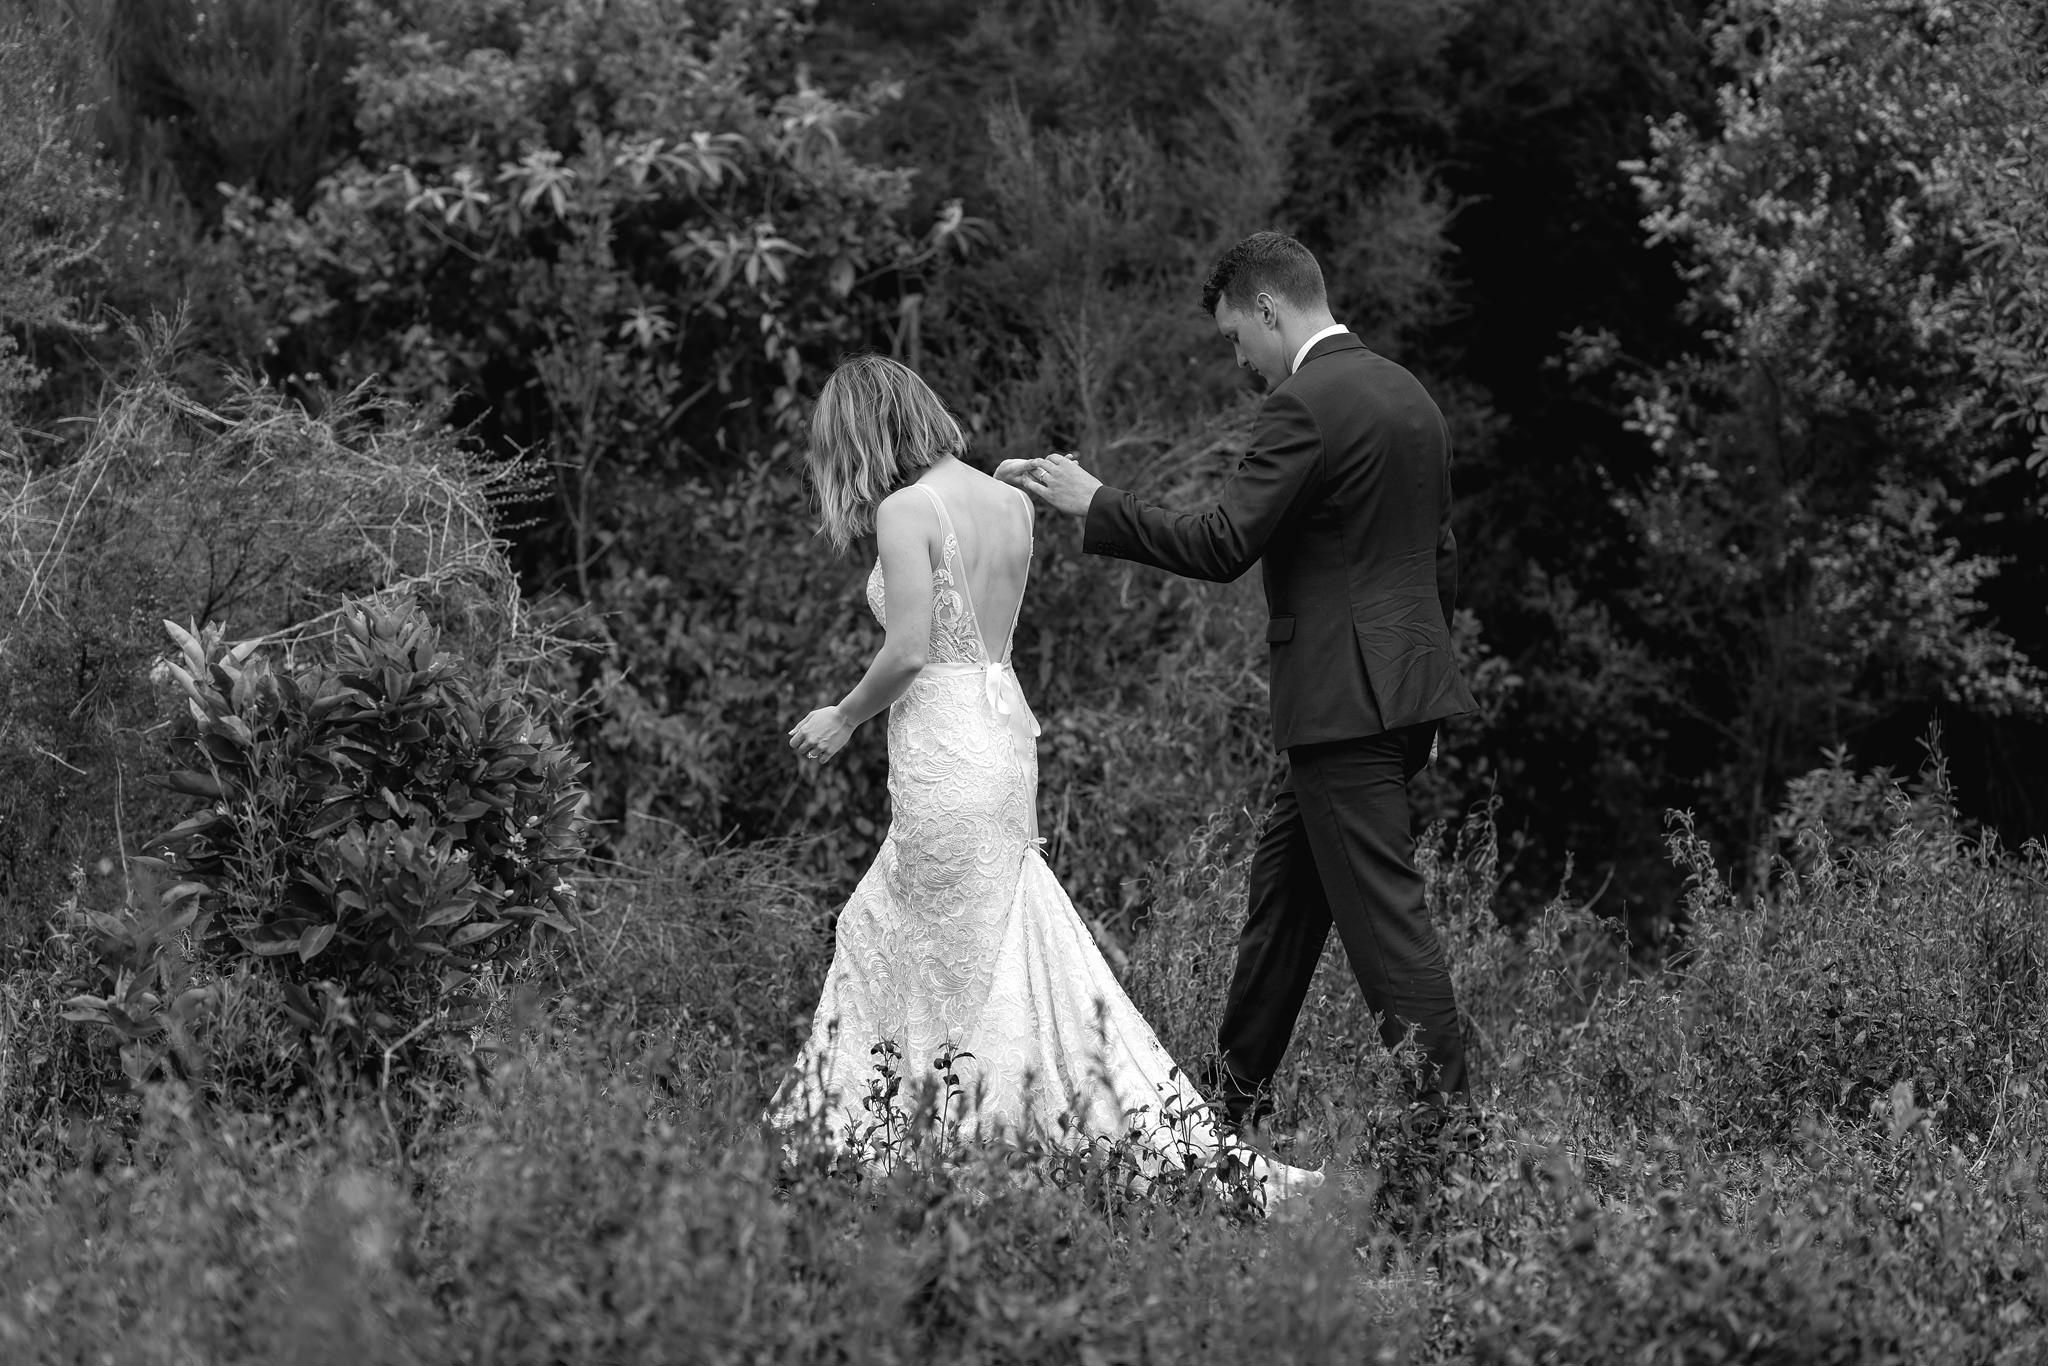 newfound-s-a-tauranga-new-zealand-wedding-photography-705